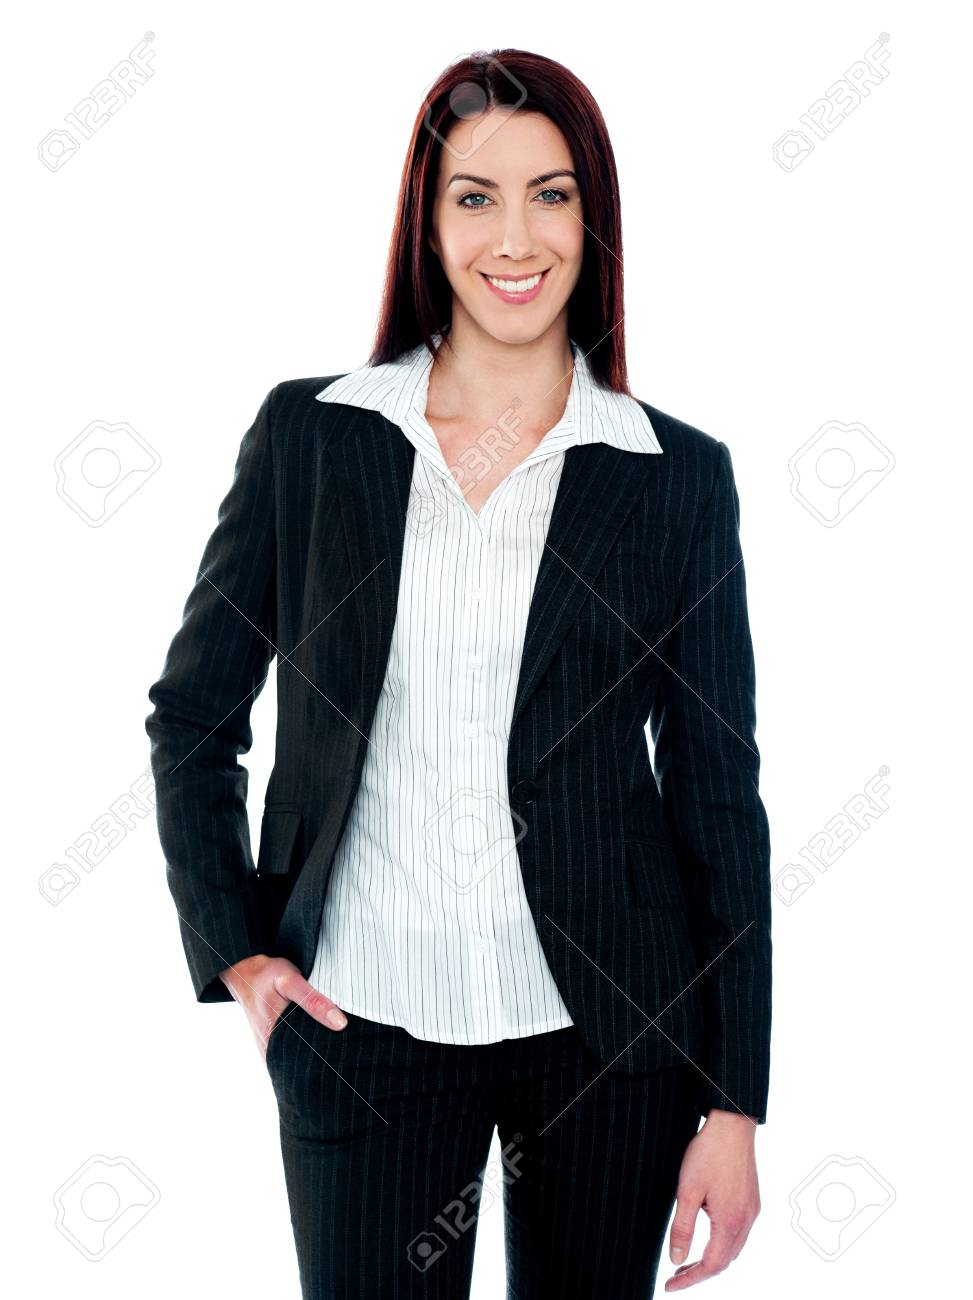 Stylish businesswoman posing with hand in pocket isolated against white background Stock Photo - 14063430